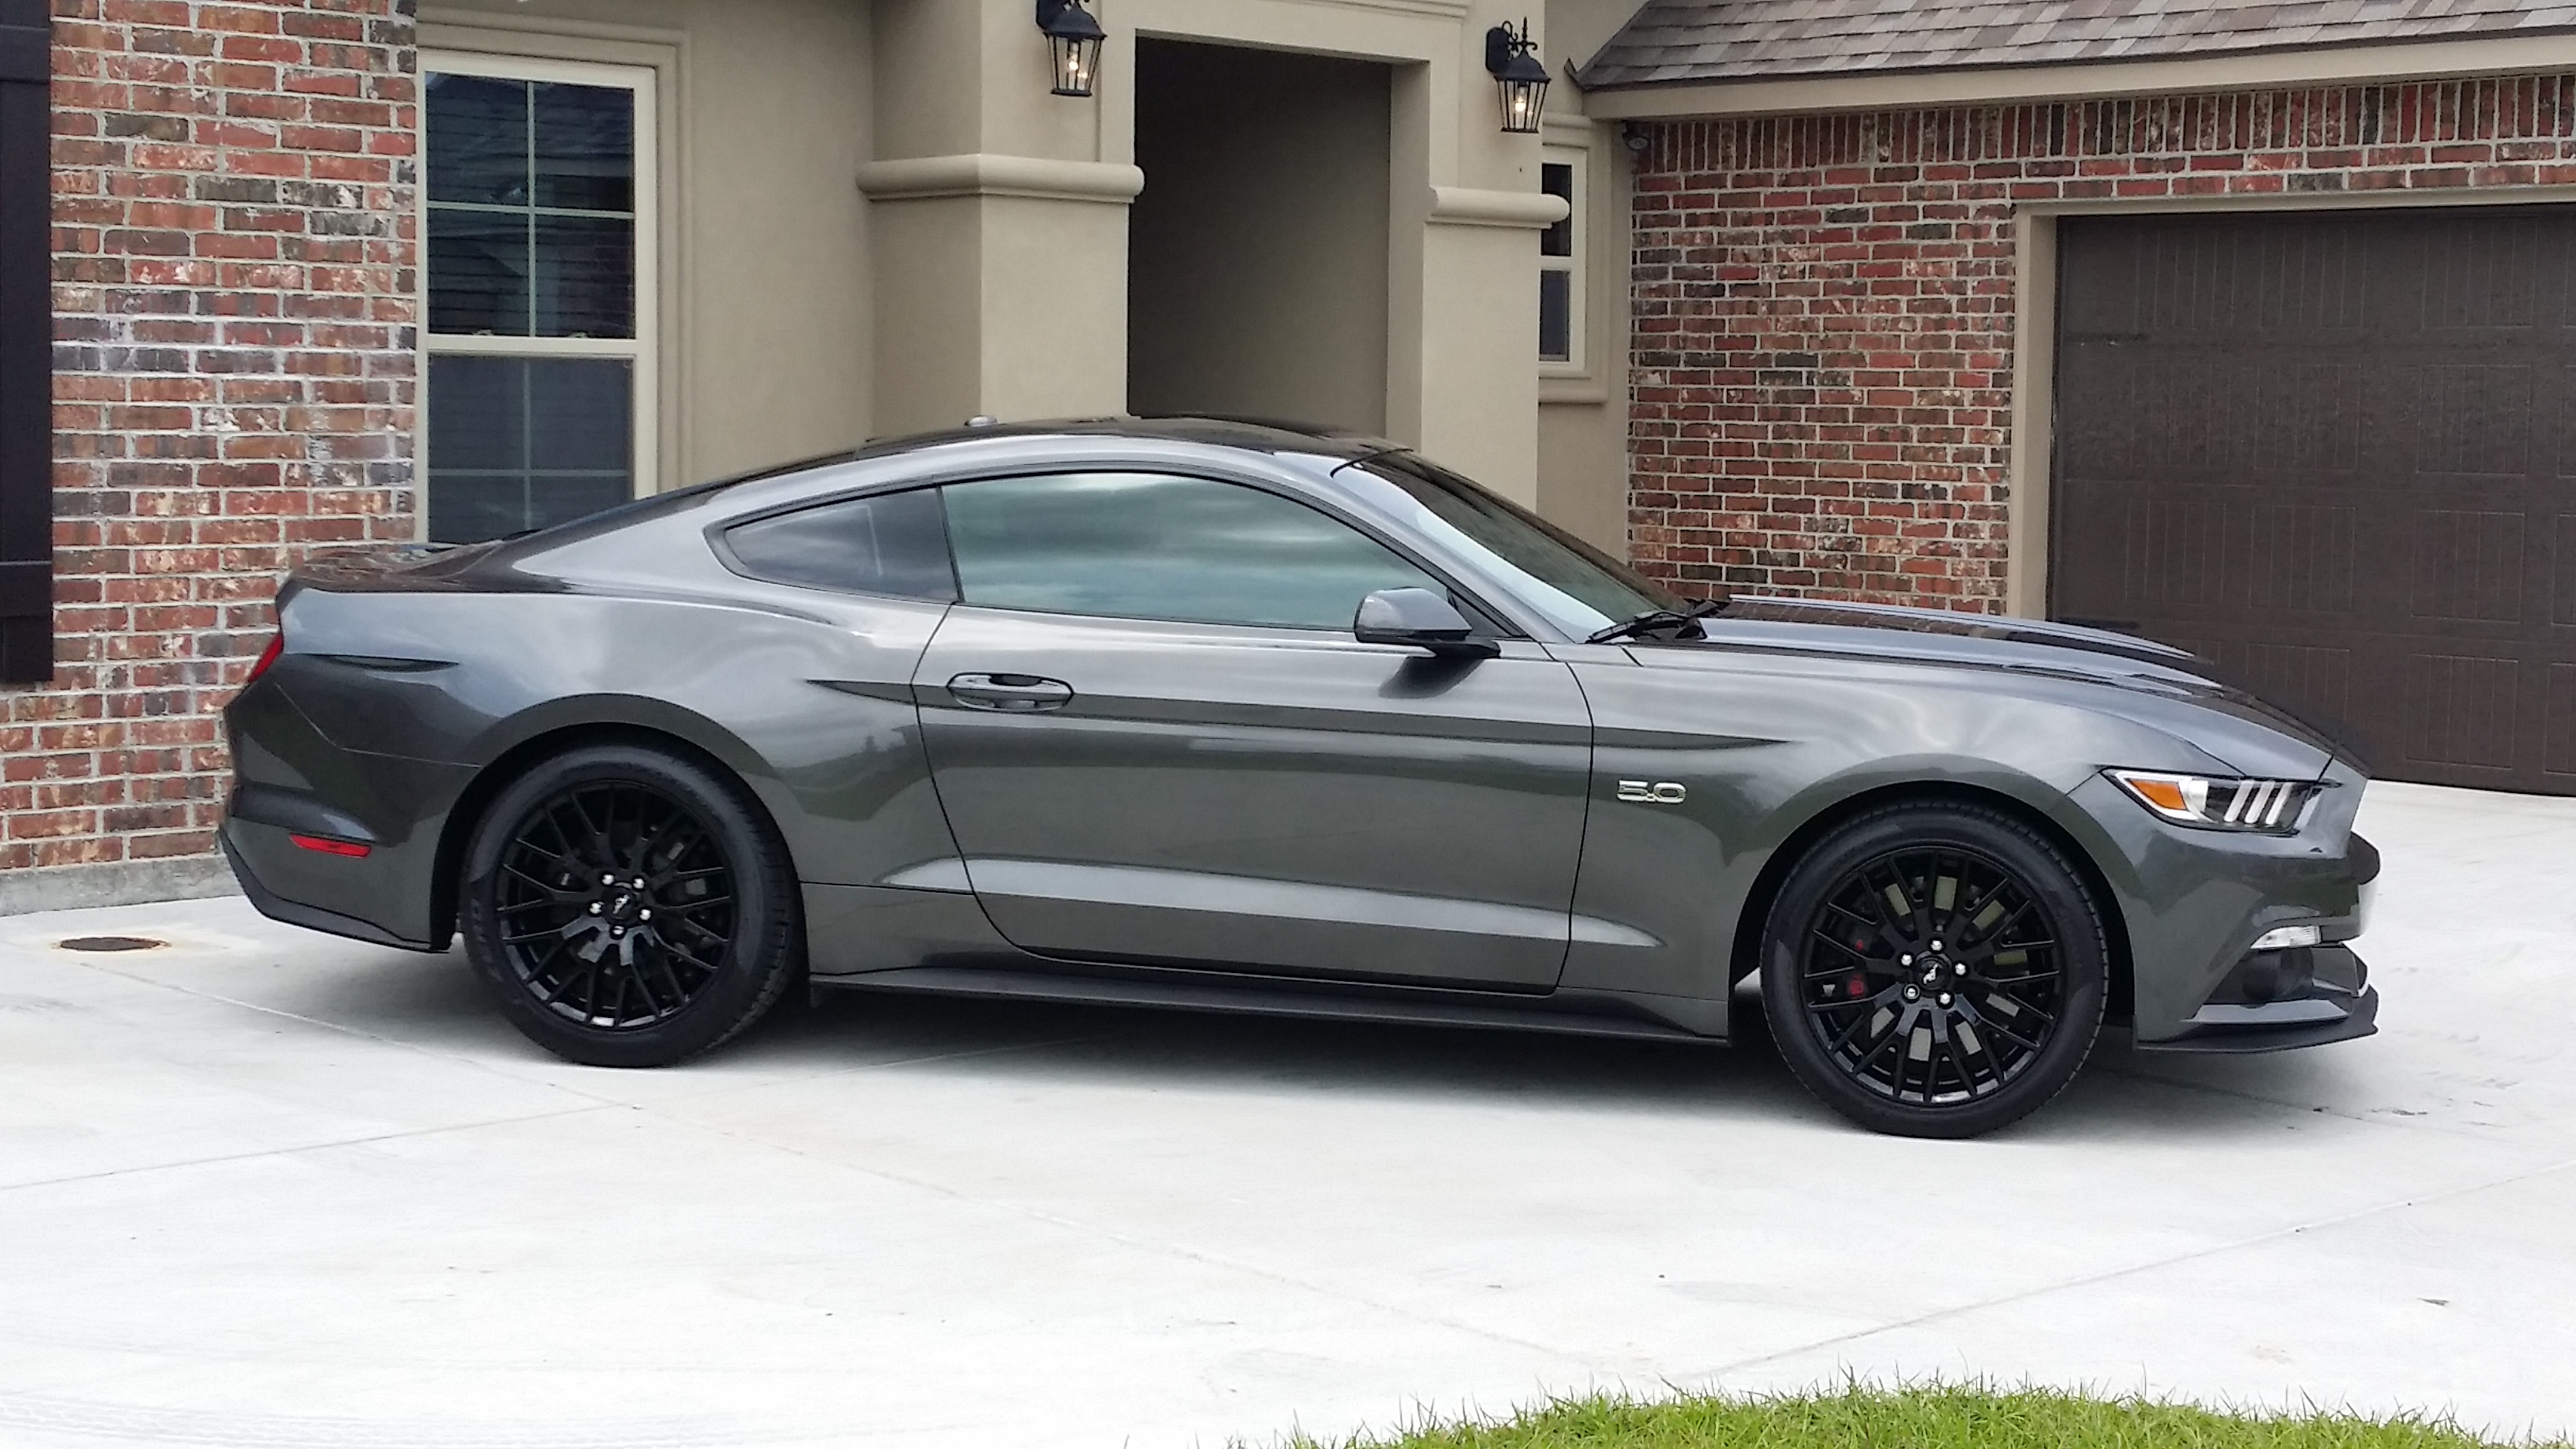 Click image for larger version  Name:mustang1.jpg Views:11034 Size:1.74 MB ID:183509